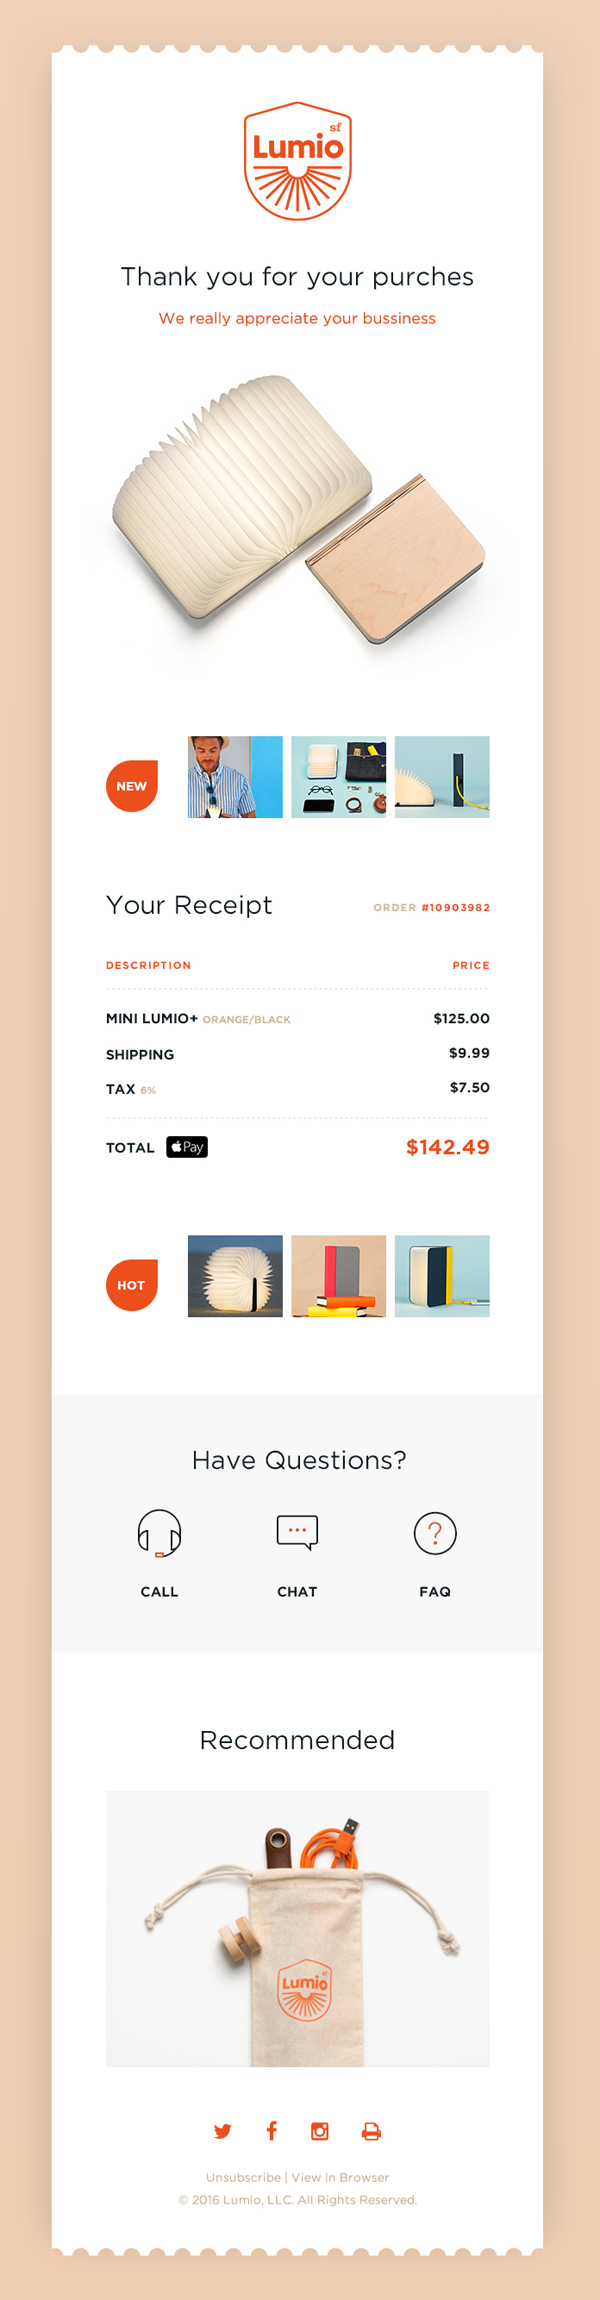 Free Email Receipt PSD UI Template